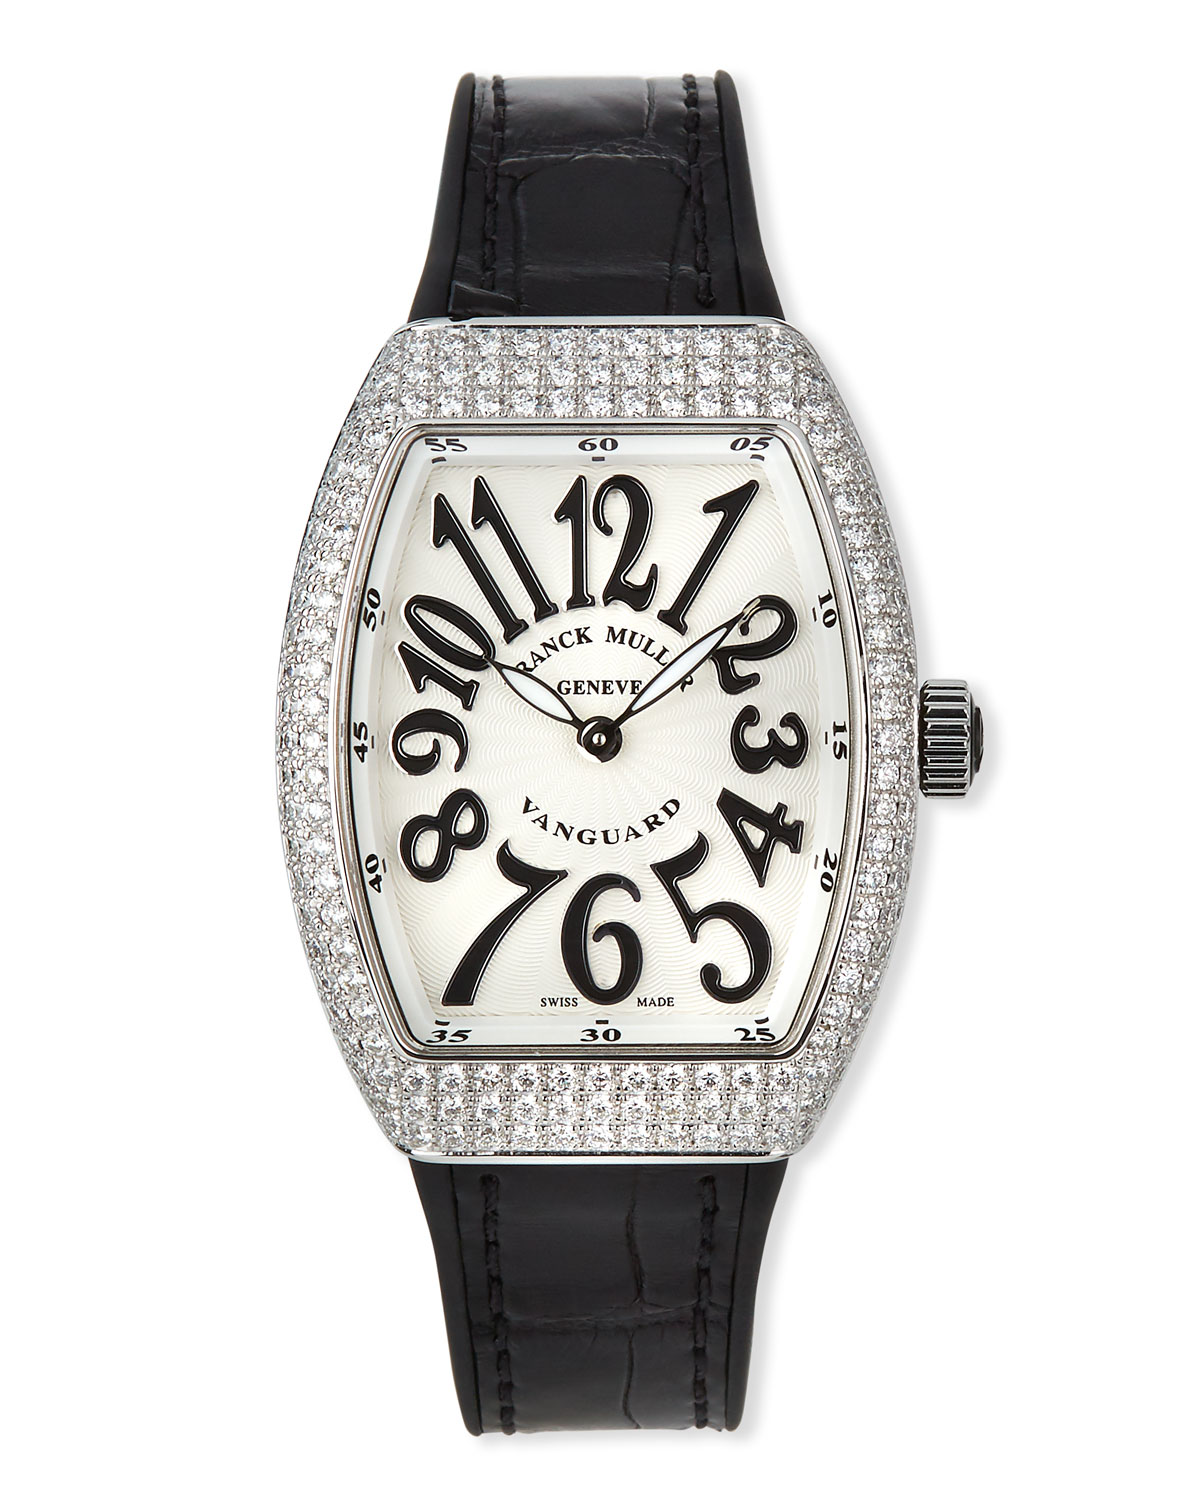 93526757db9 Franck Muller Lady Vanguard Watch with Diamonds   Alligator Strap ...